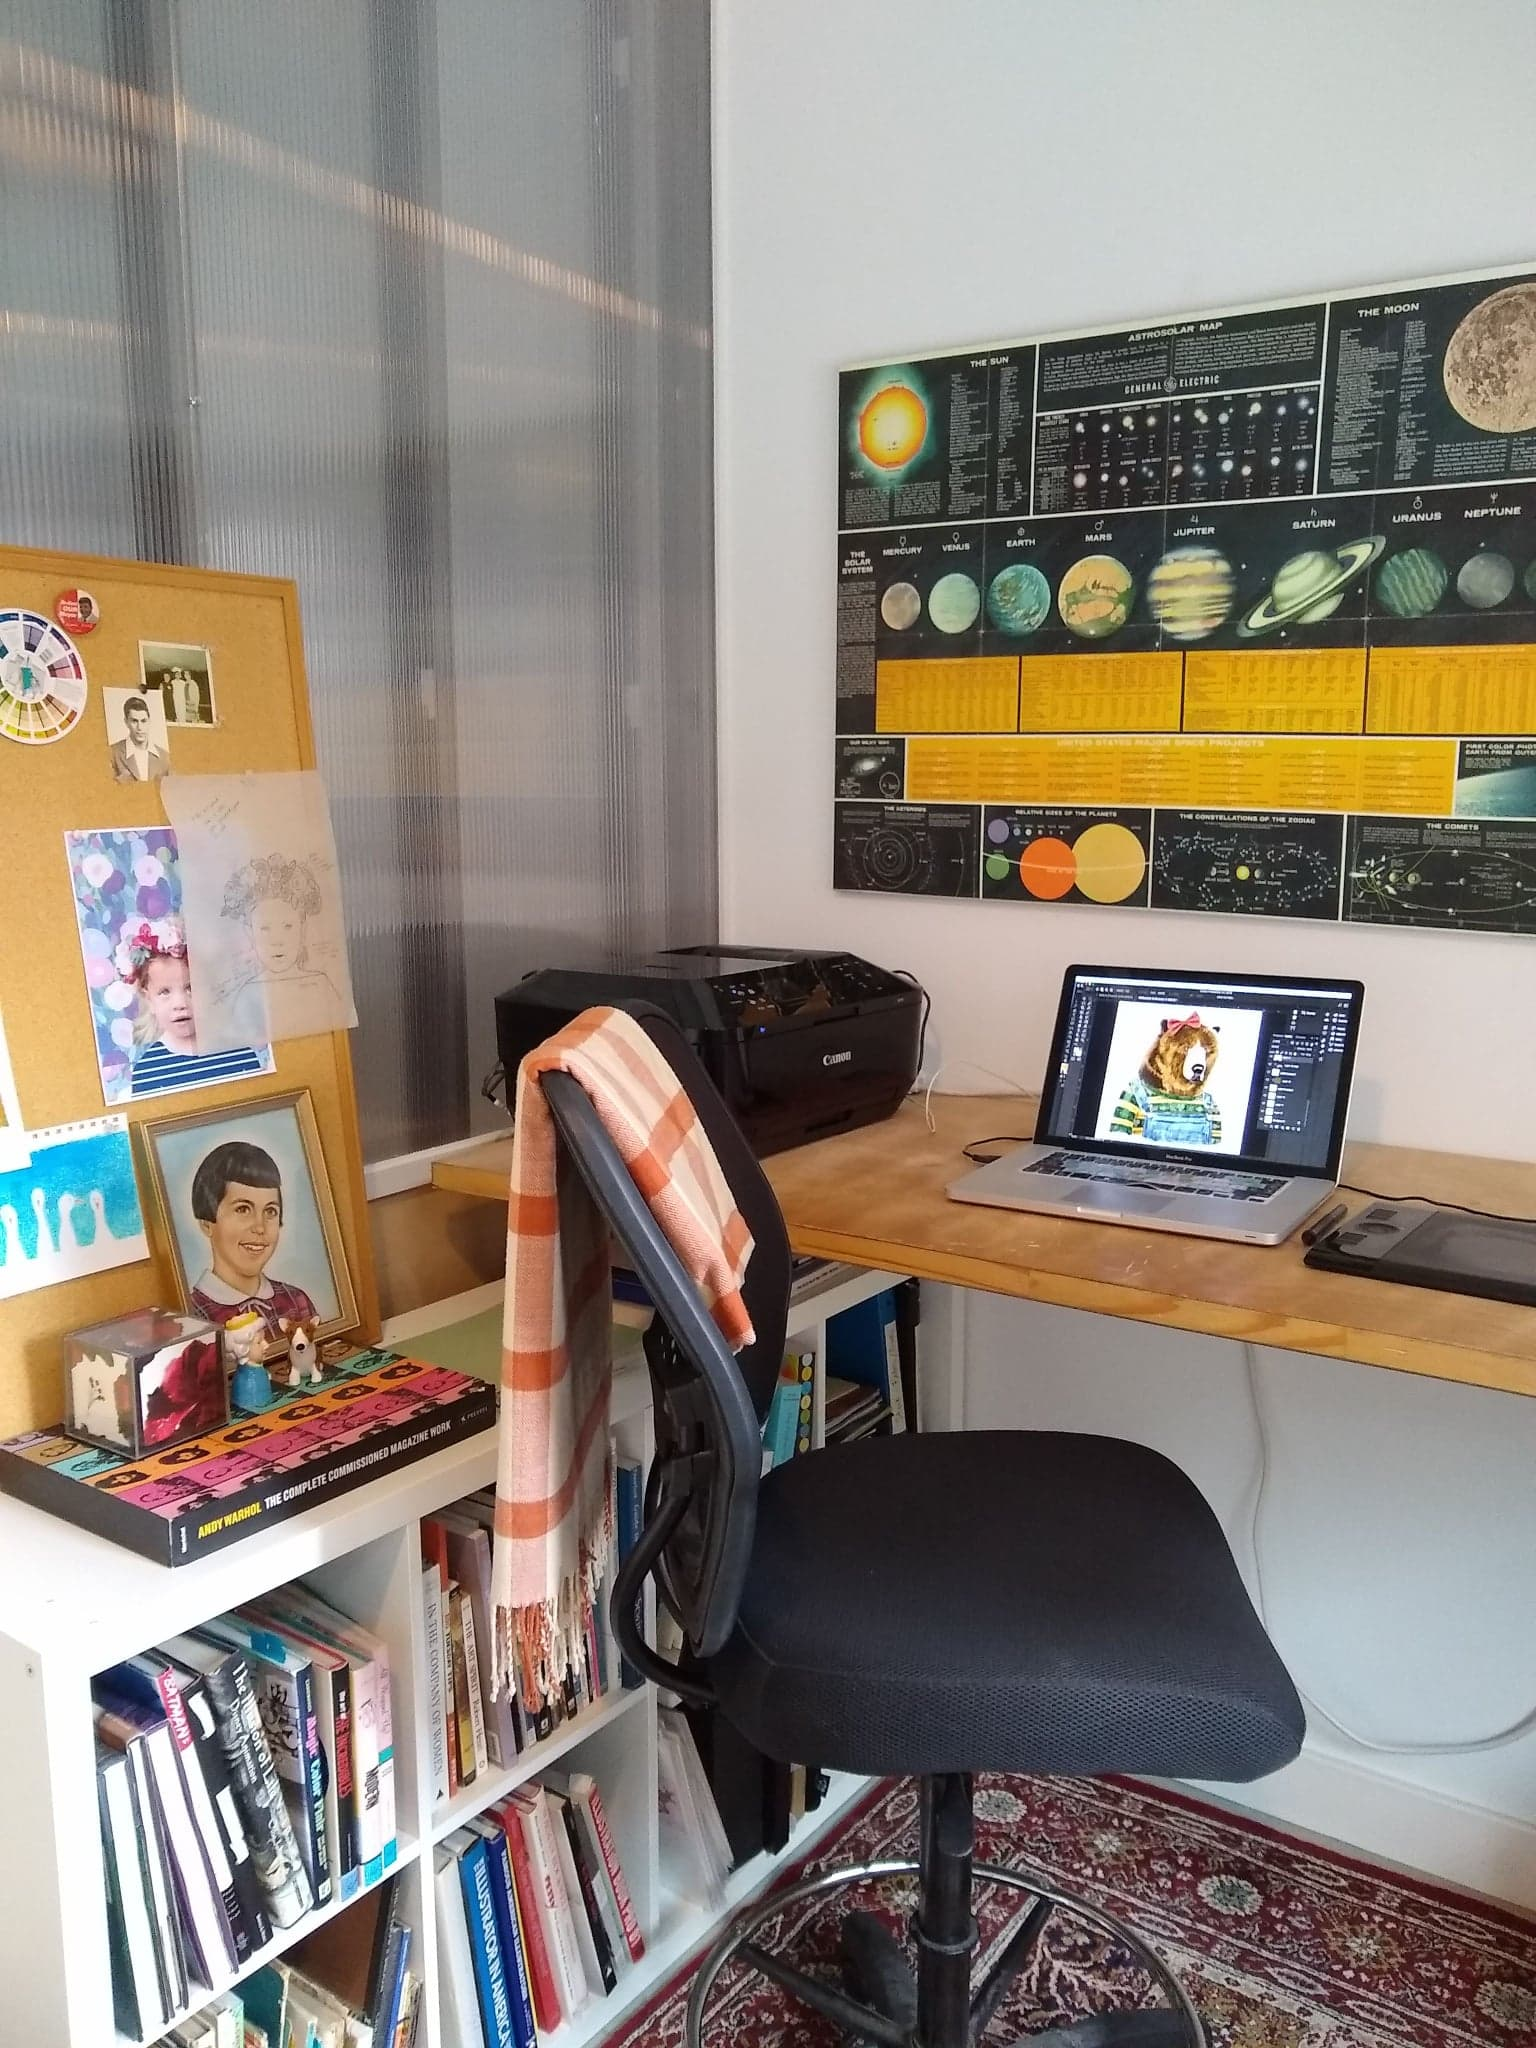 E.Campanella Design Studios is located in ROOMS&WORKS, a creative co-working space in Providence.